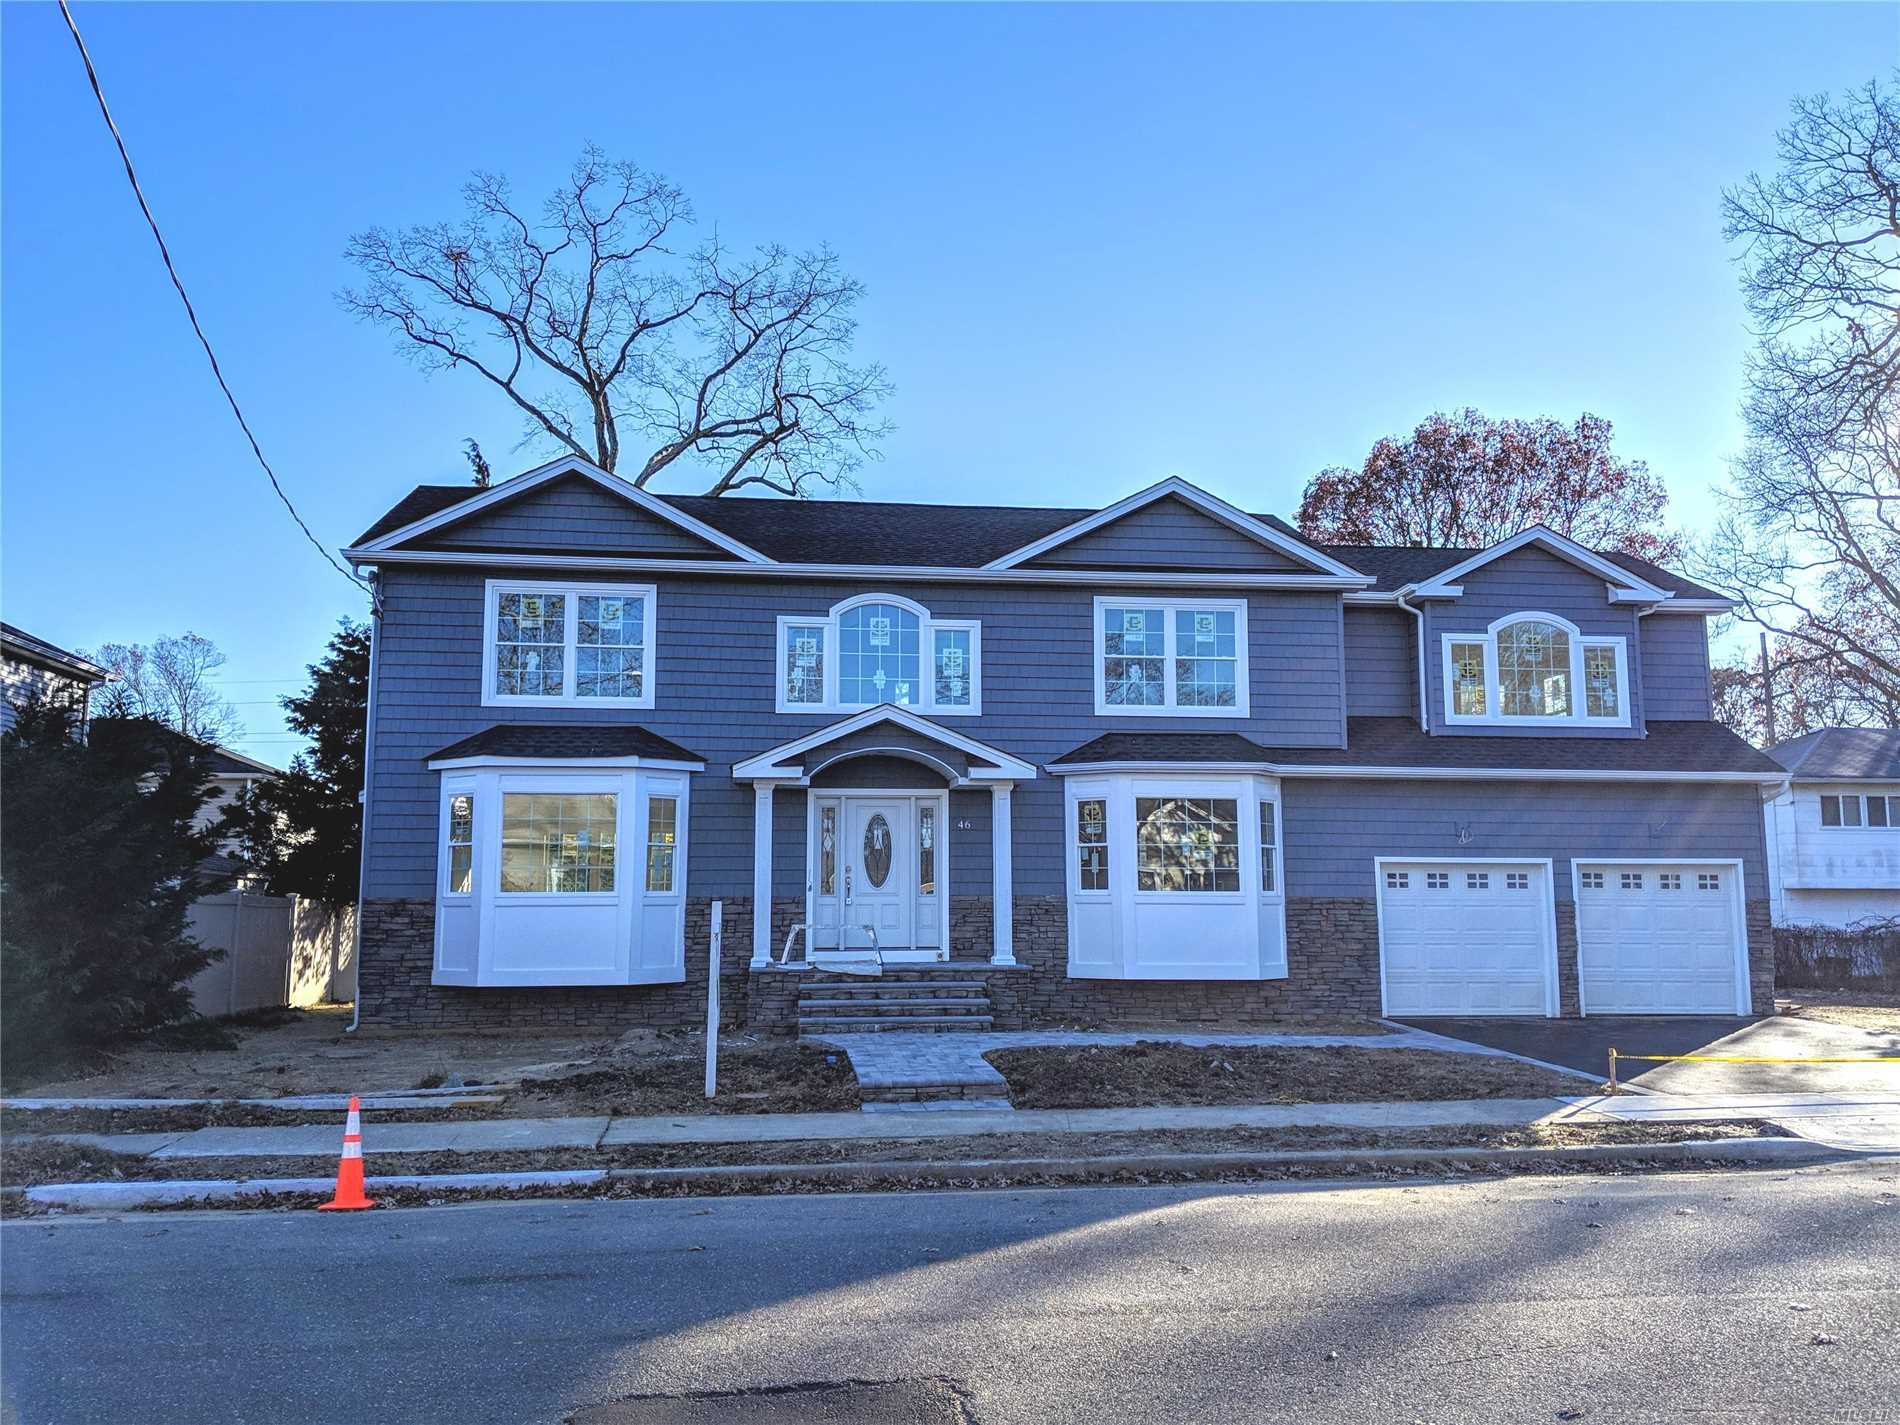 Energy Star New Construction In Mass Woods/Mass Sd #23 Mid Block Location. Ez Access To Train/Prkwys & Shopping, N Of Sunrise Hwy. Many Extra Perks Not Usual To New Constr. Pella Windows, Dramatic 2 Story Foyer W/Circ Stairs, Built Ins By Fpl & In Mud Room, Oak Floors/Banister In Bsmt. 2 Car Gar, Master Suite W/Lrg Wic, Dbl Closet & Full Bath, 2nd Floor Laundry Room. Model Home @ 47 Clark Is Similar But Different. Some Pix Are Of Clark For Workmanship Purposes. Time Still To Choose Kitchen!